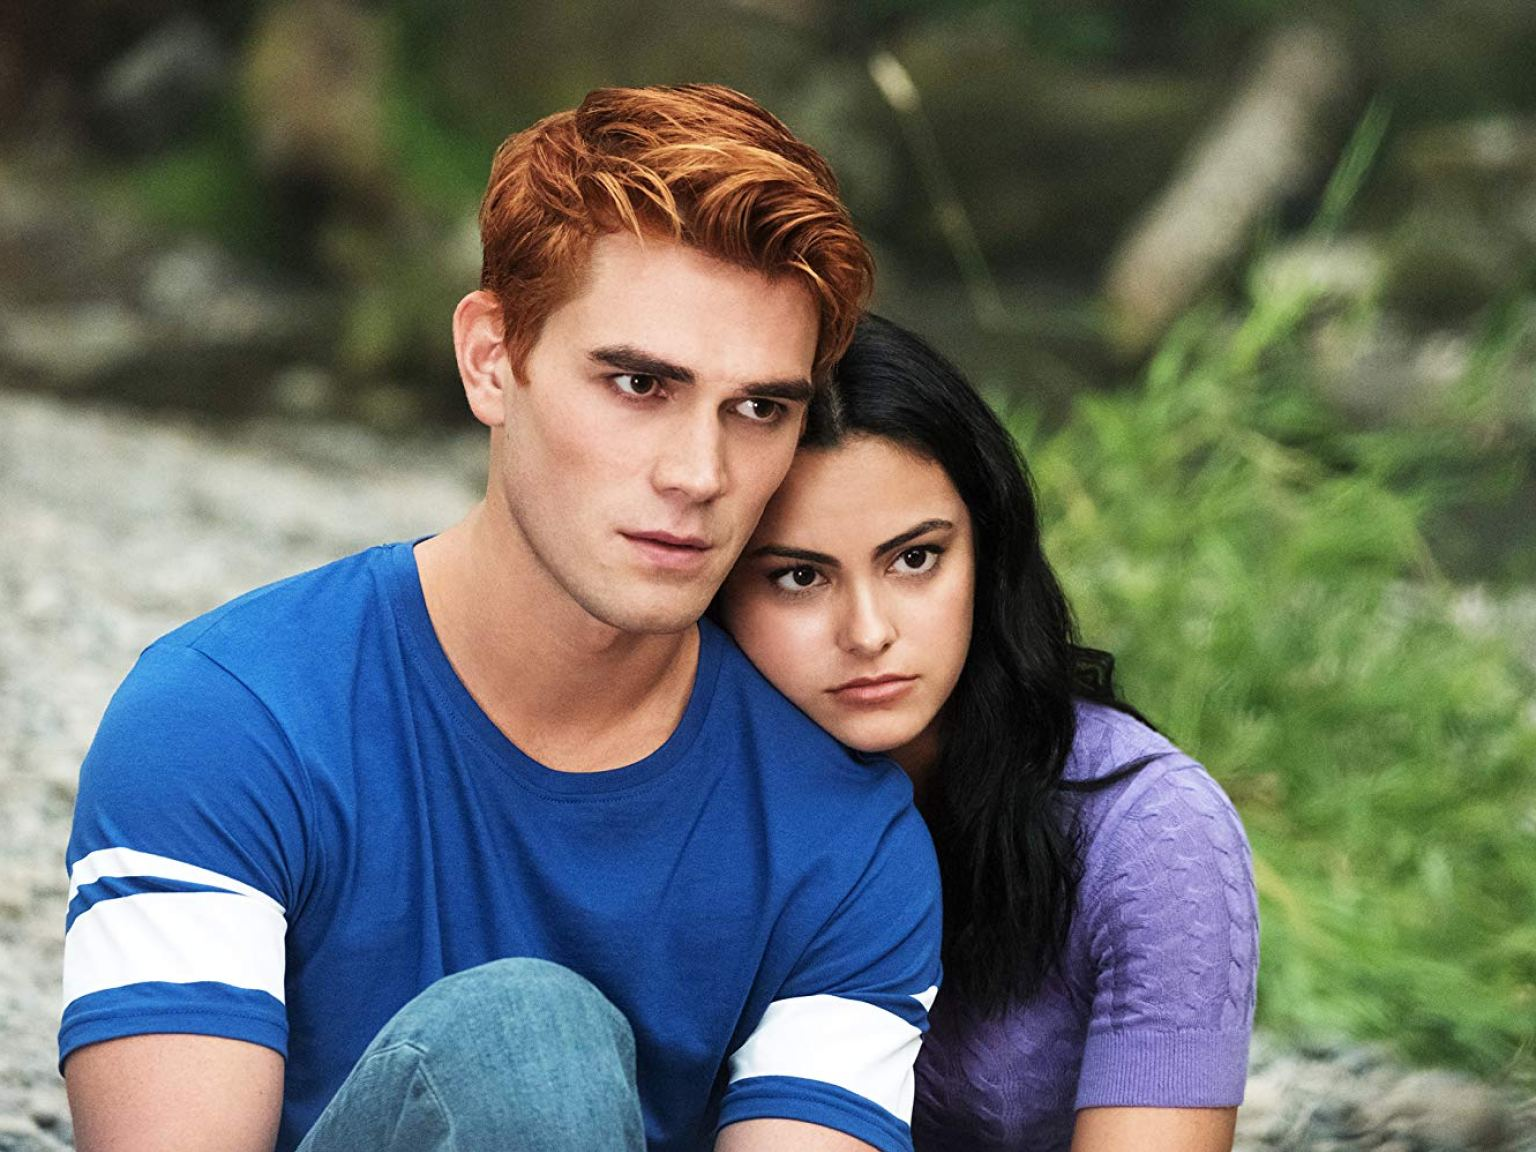 KJ Apa And Camila Mendes Reveal How They Film Kissing Scenes For 'Riverdale' Amid The Pandemic!